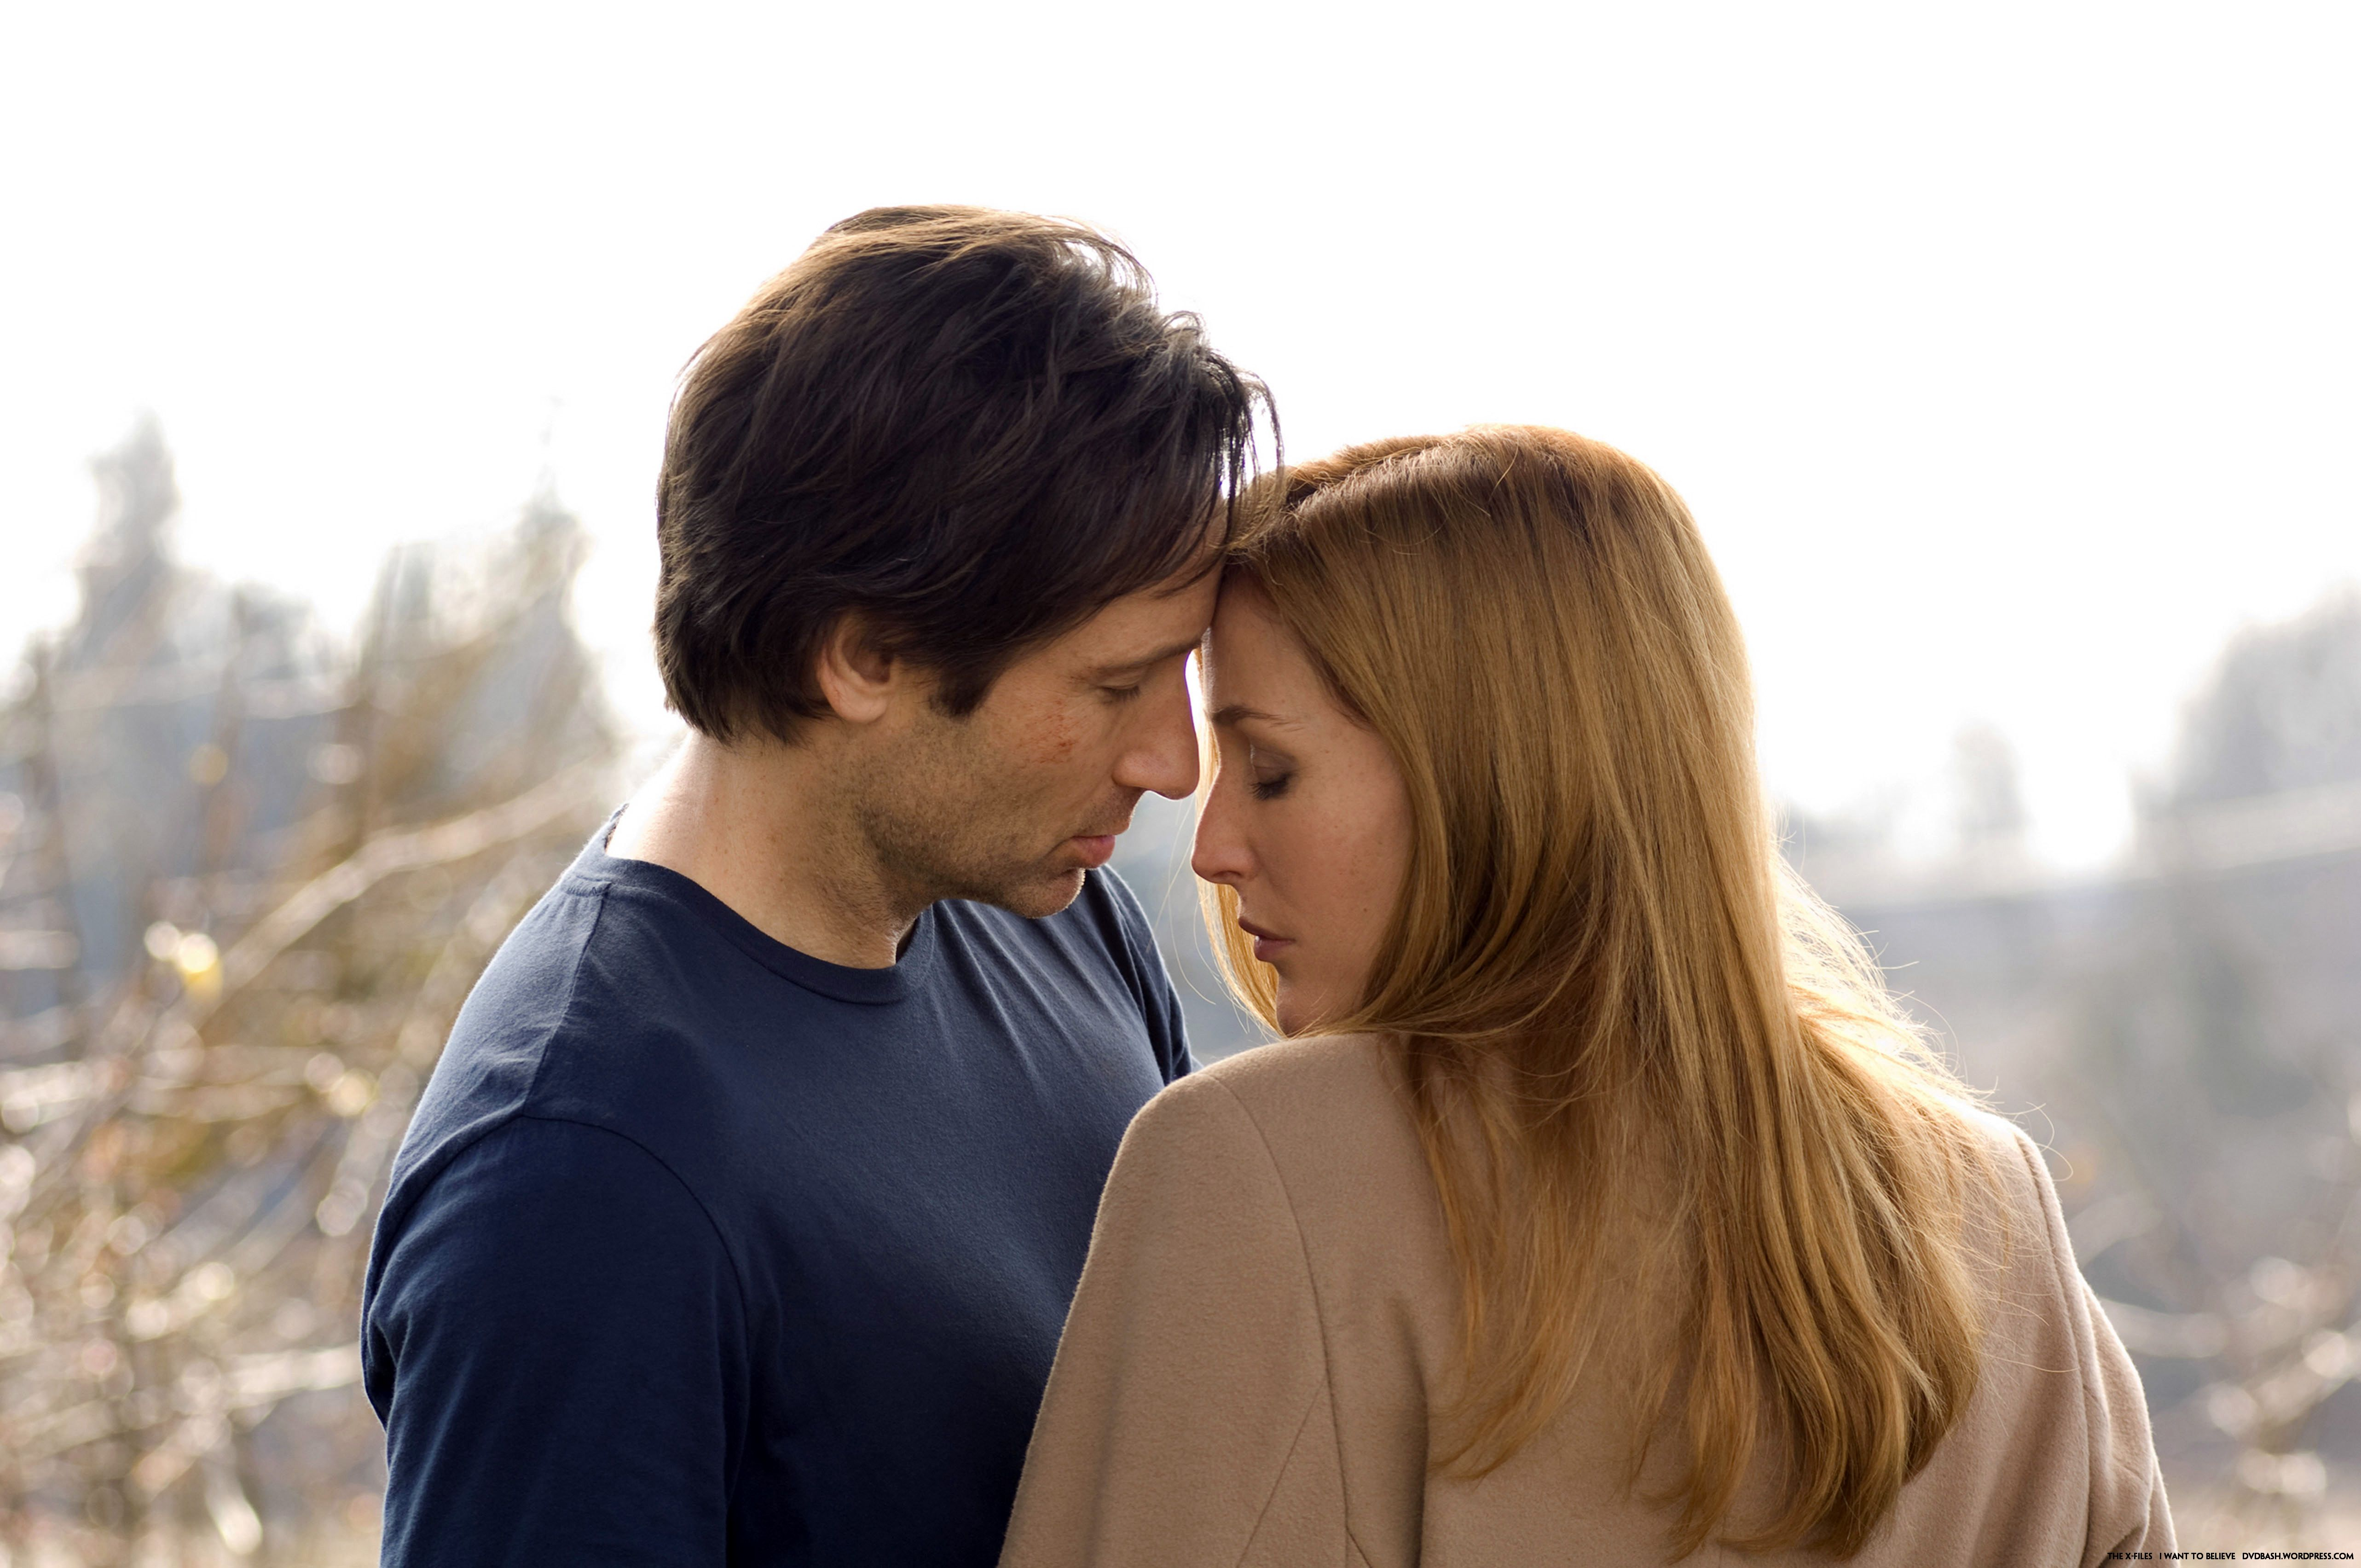 x-files-i-want-to-believe-david-duchovny-gillian-anderson-mulder-scully-dvdbash-wordpress17